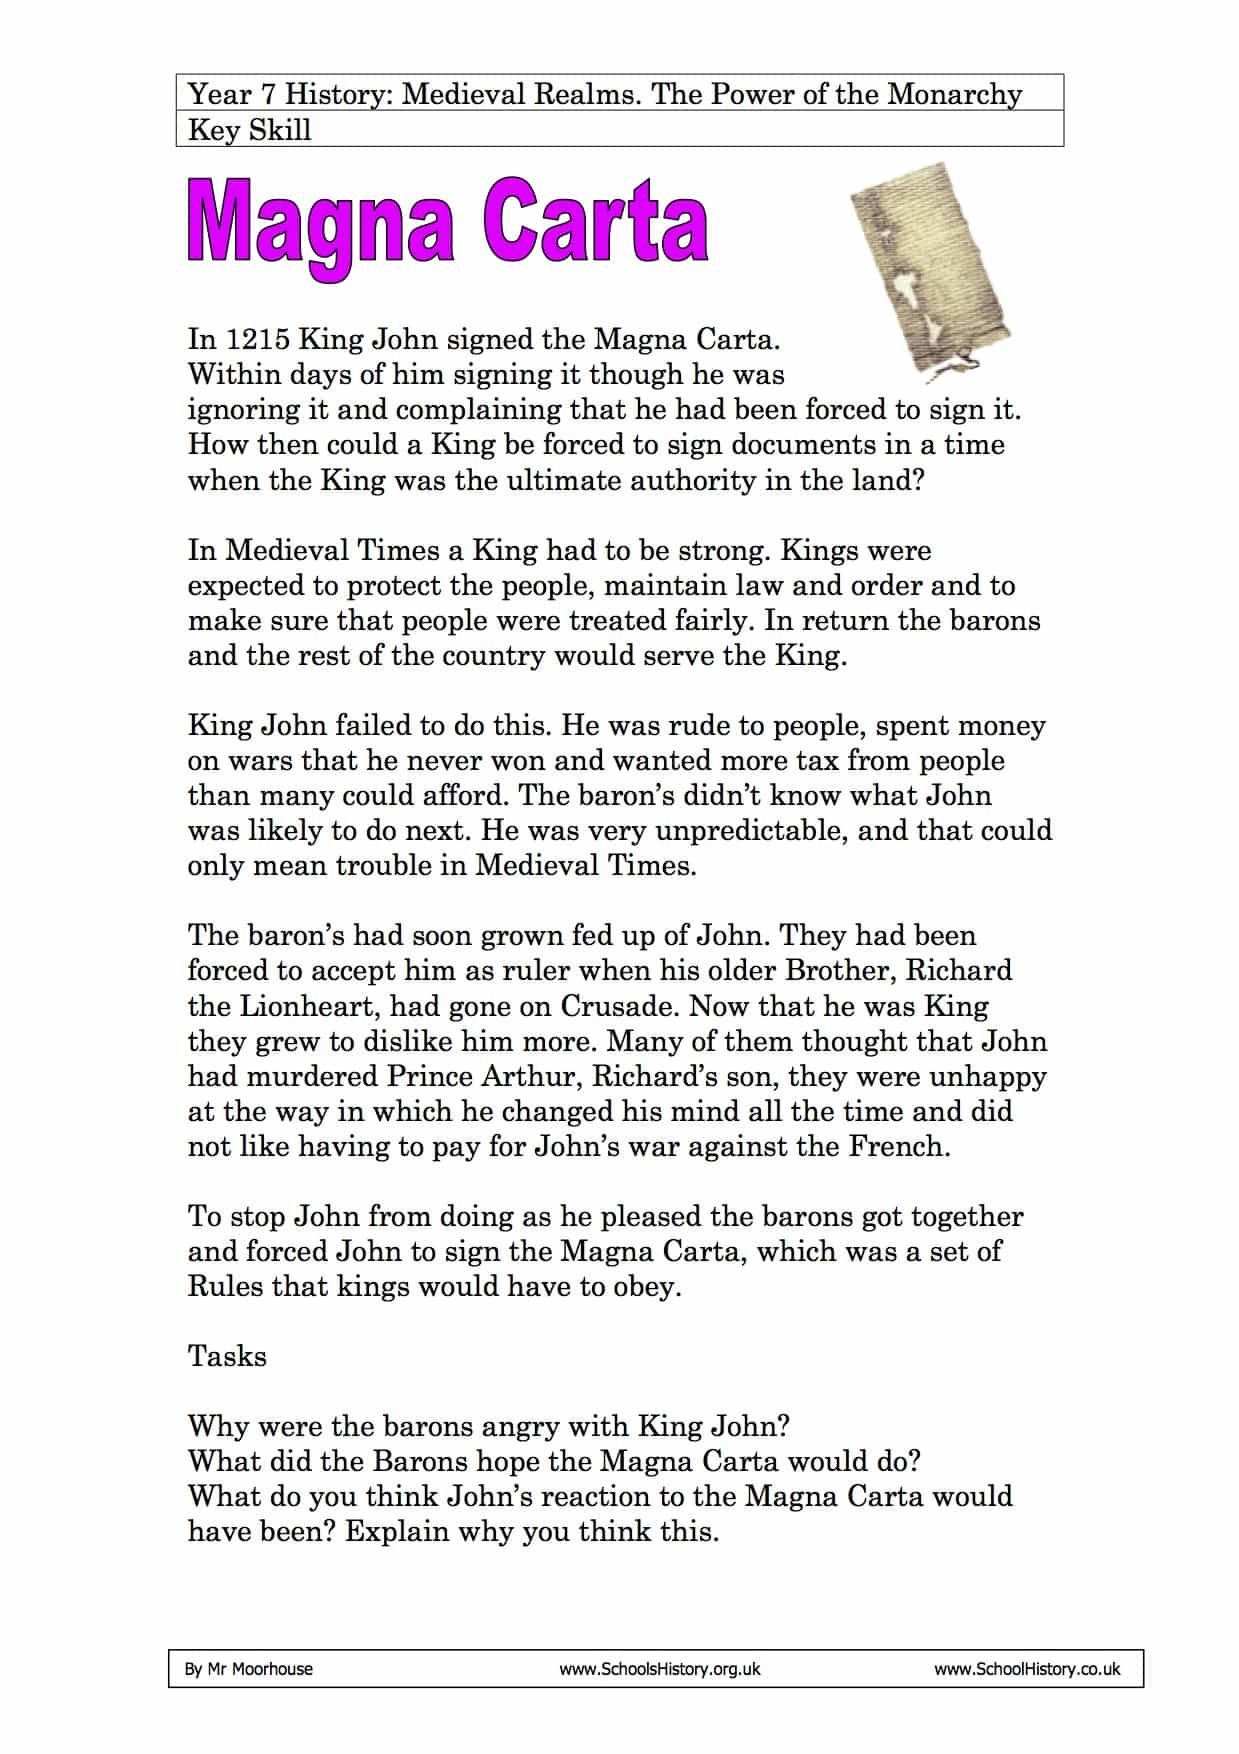 The signing of the Magna Carta by King John Year 7 Worksheet